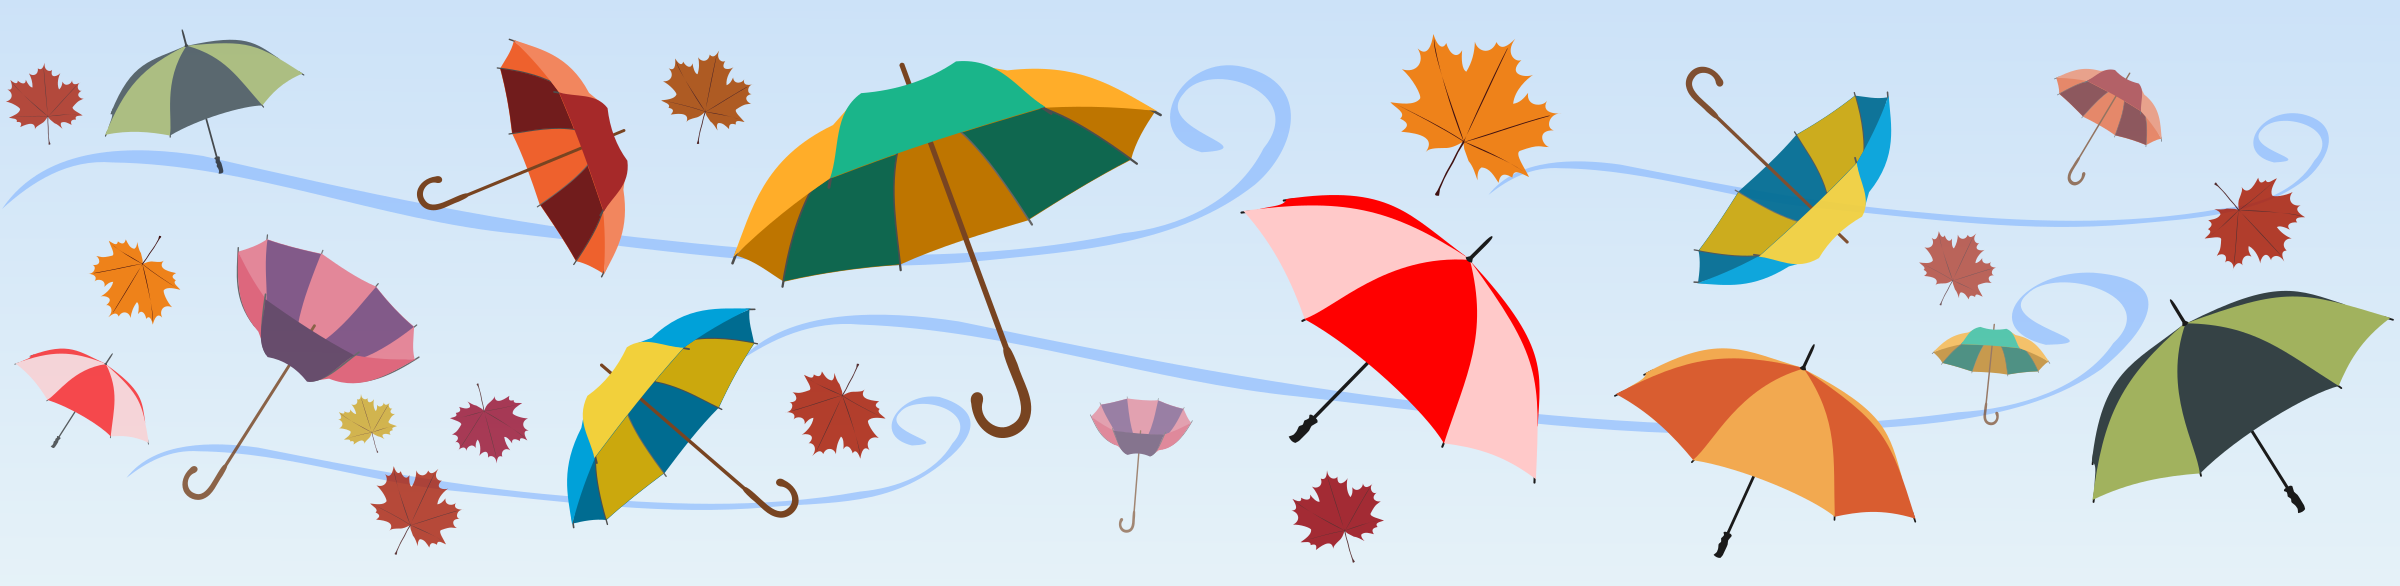 Free Windy Day Cliparts, Download Free Clip Art, Free Clip.